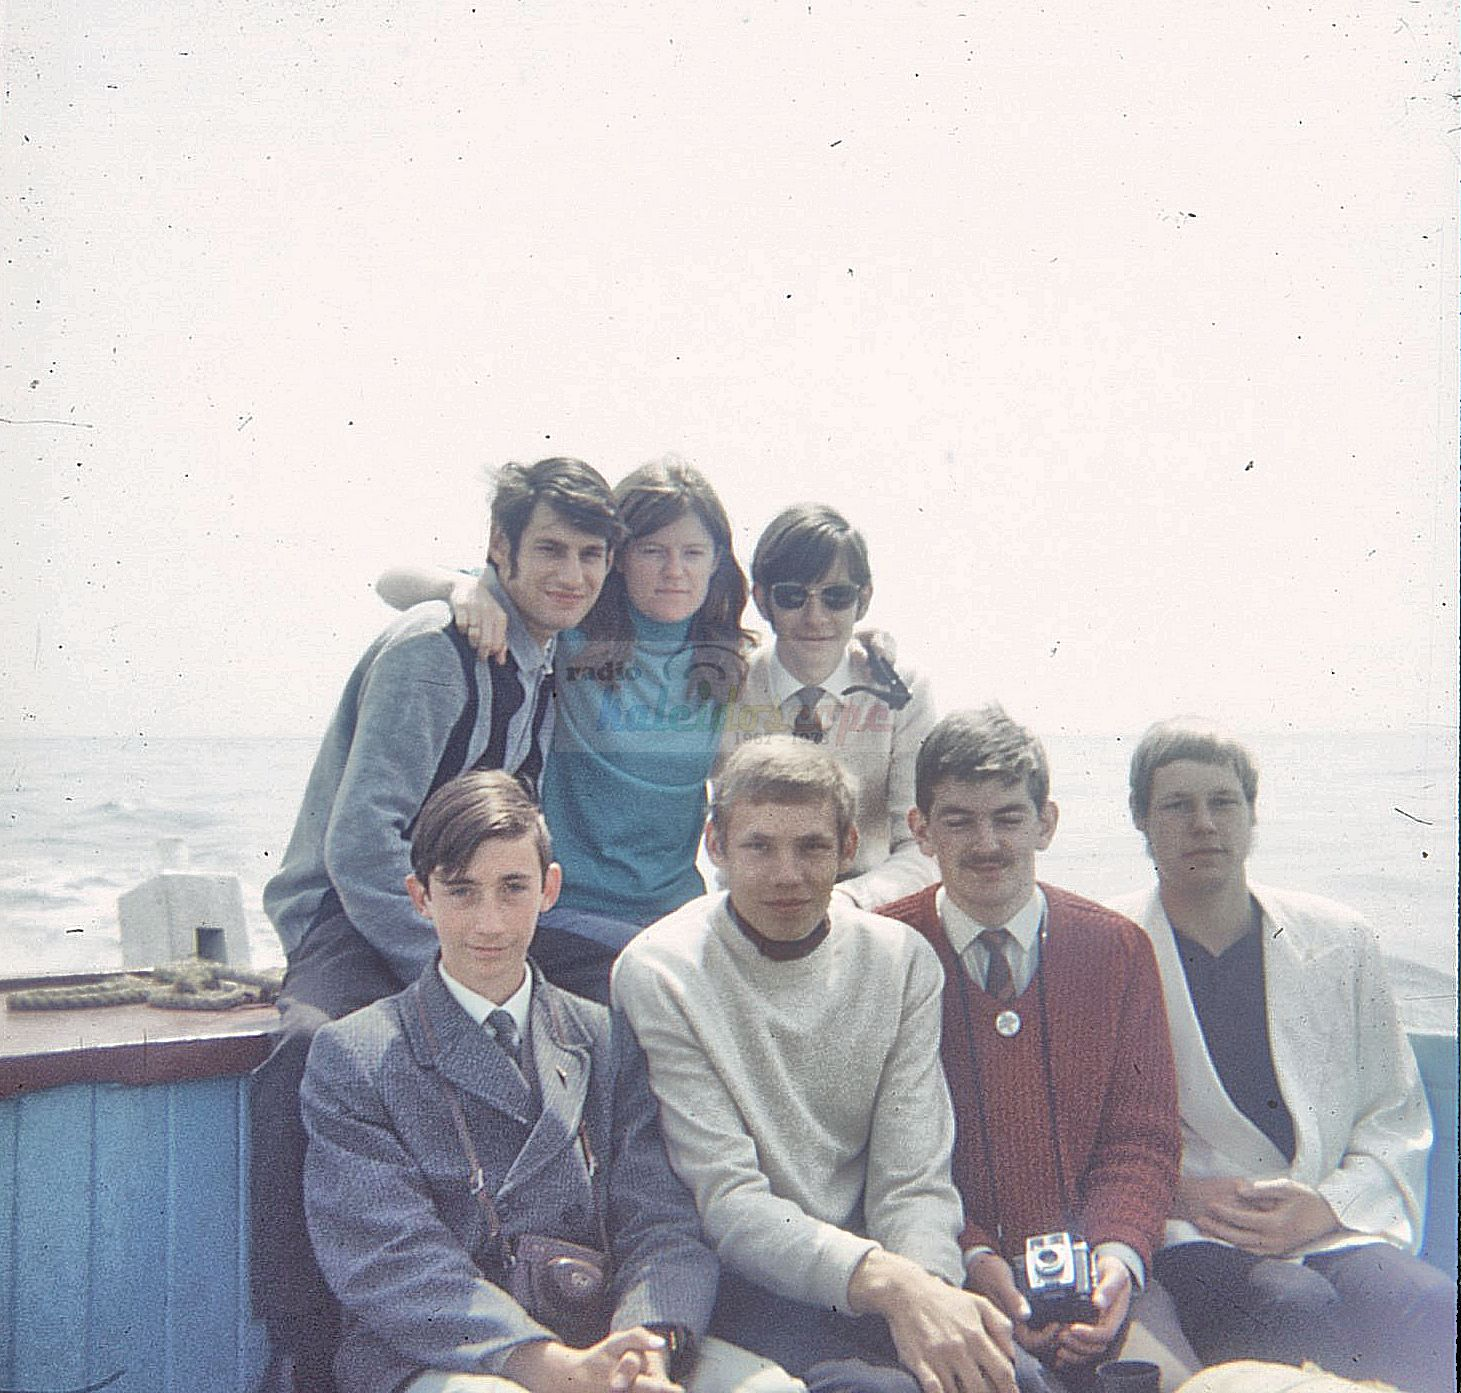 57._Robert,Mike,Peter,bob,tony,Lyn,Paul_28.6.69-SW